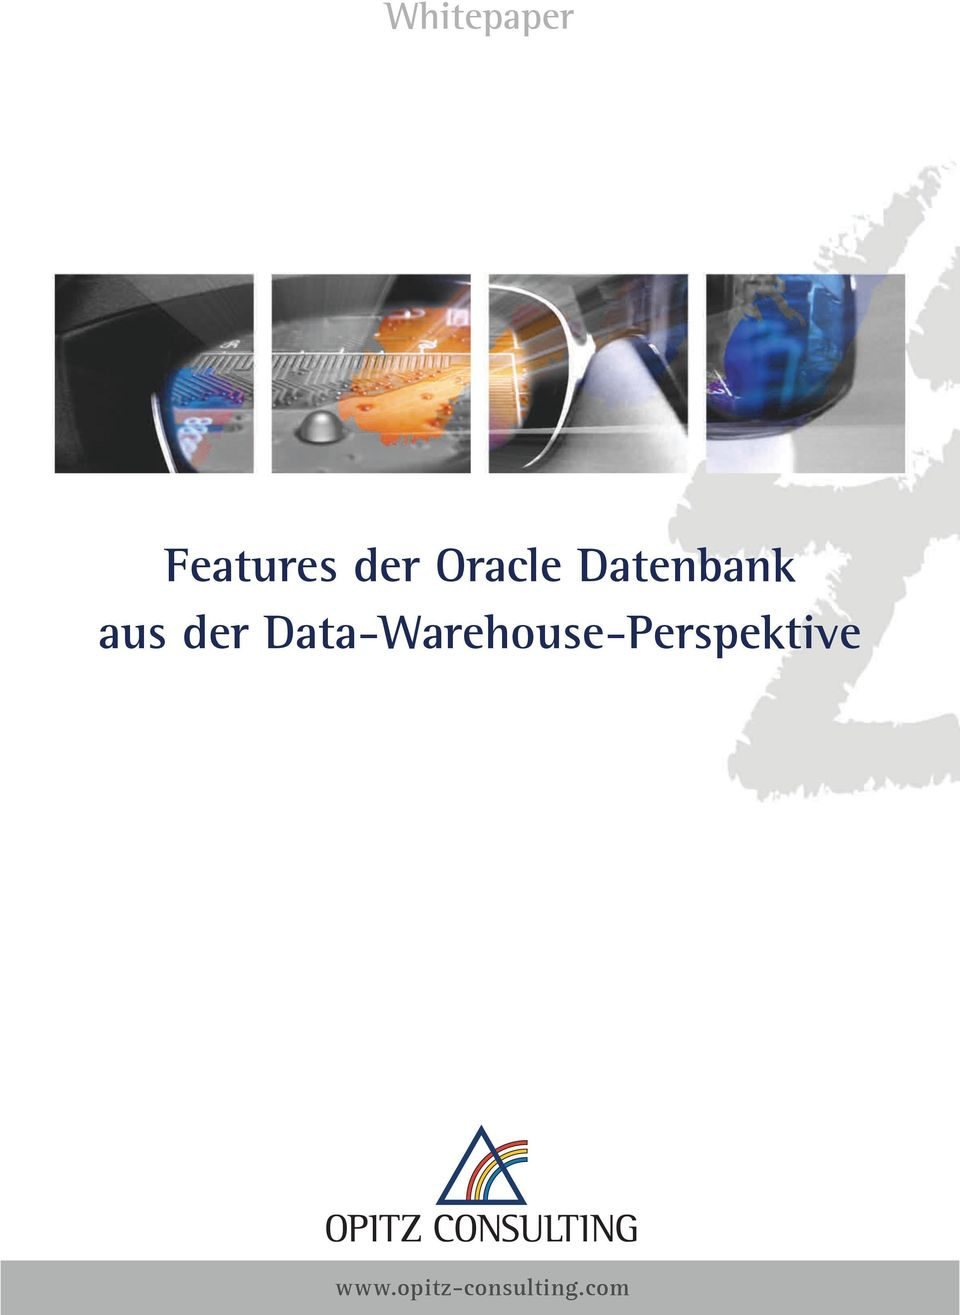 Oracle Datenbank